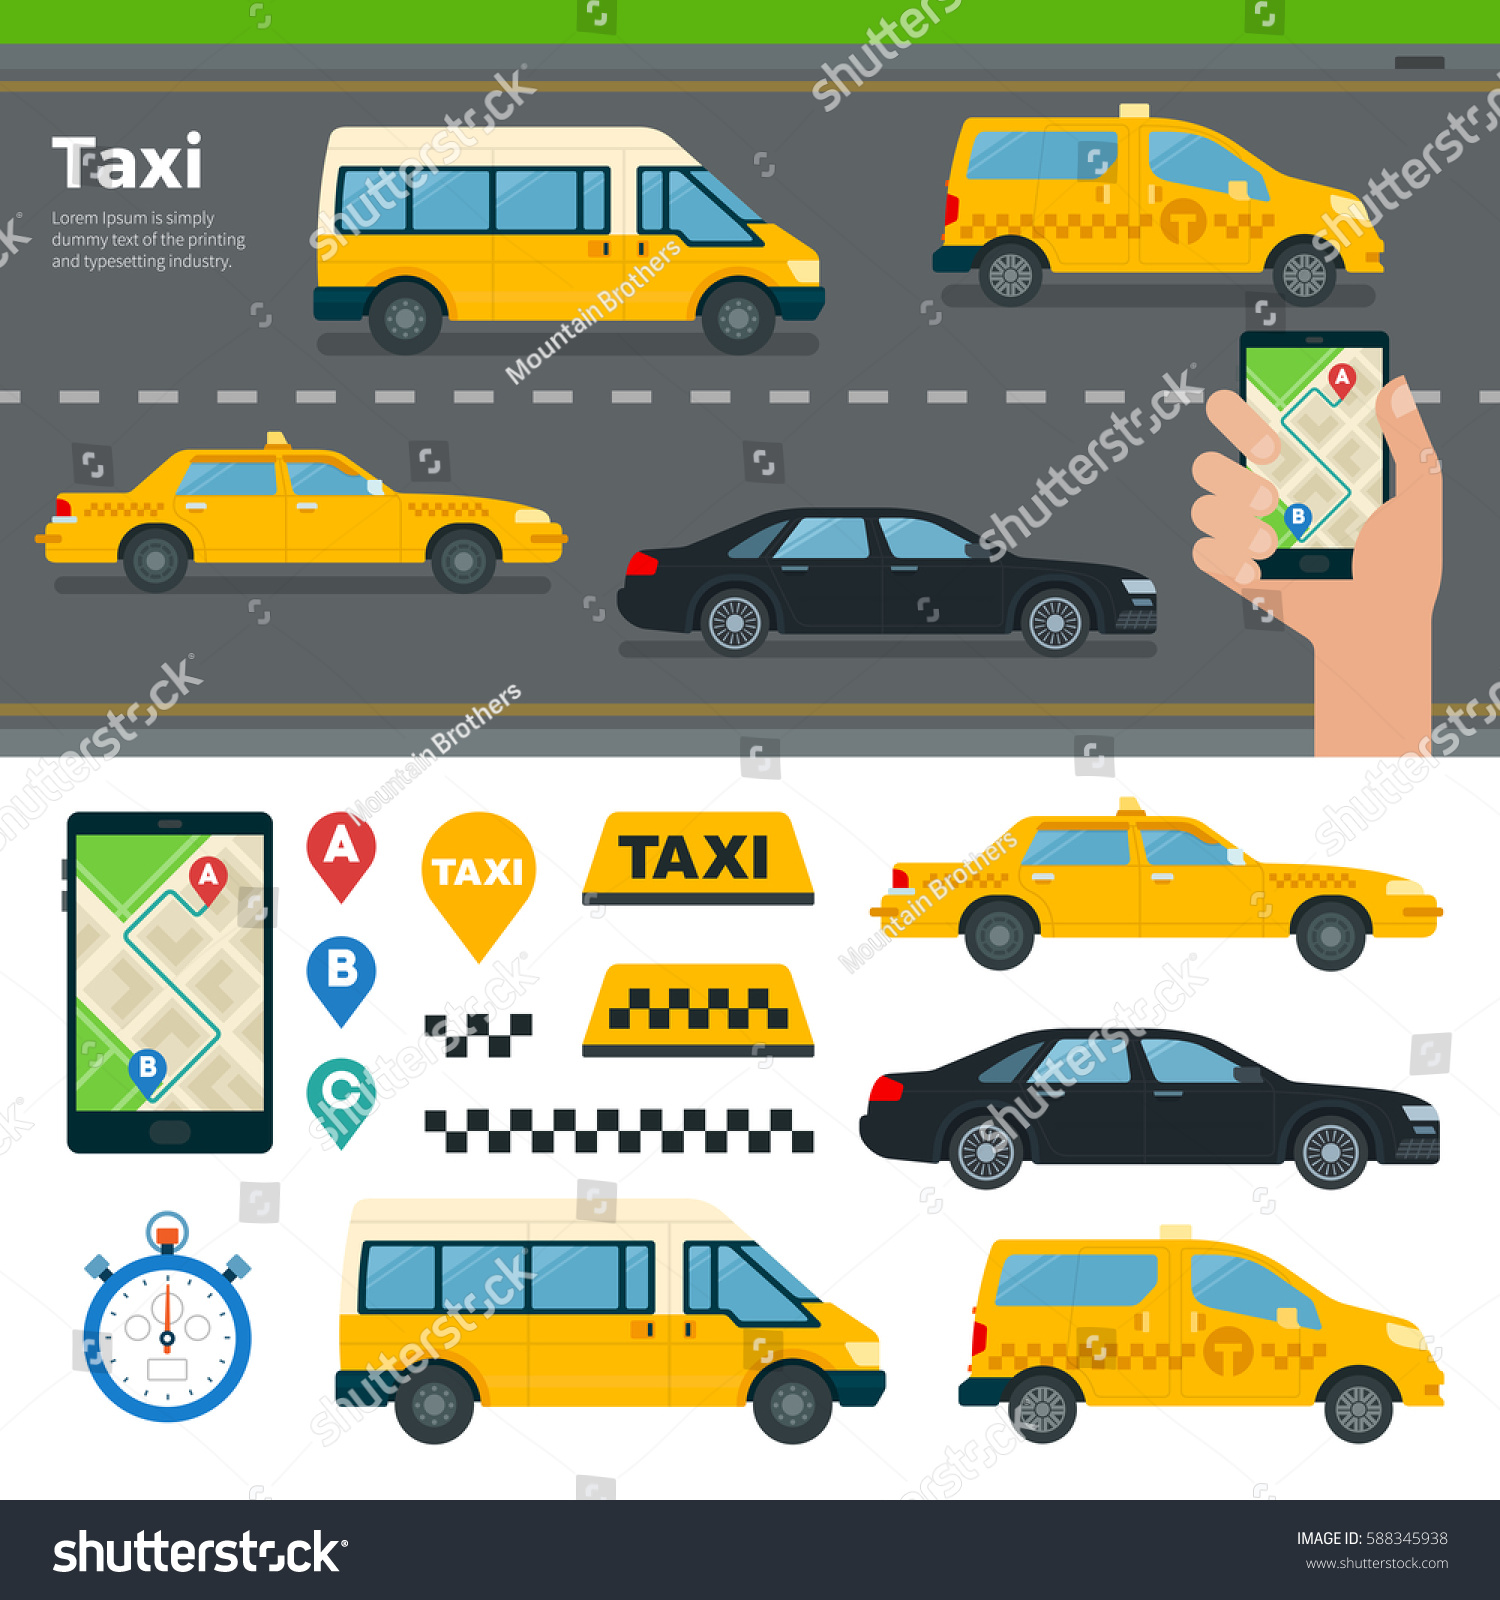 Banner different types taxi cars hand stock illustration 588345938 banner with different types of taxi cars and hand hold mobile app for booking taxi on biocorpaavc